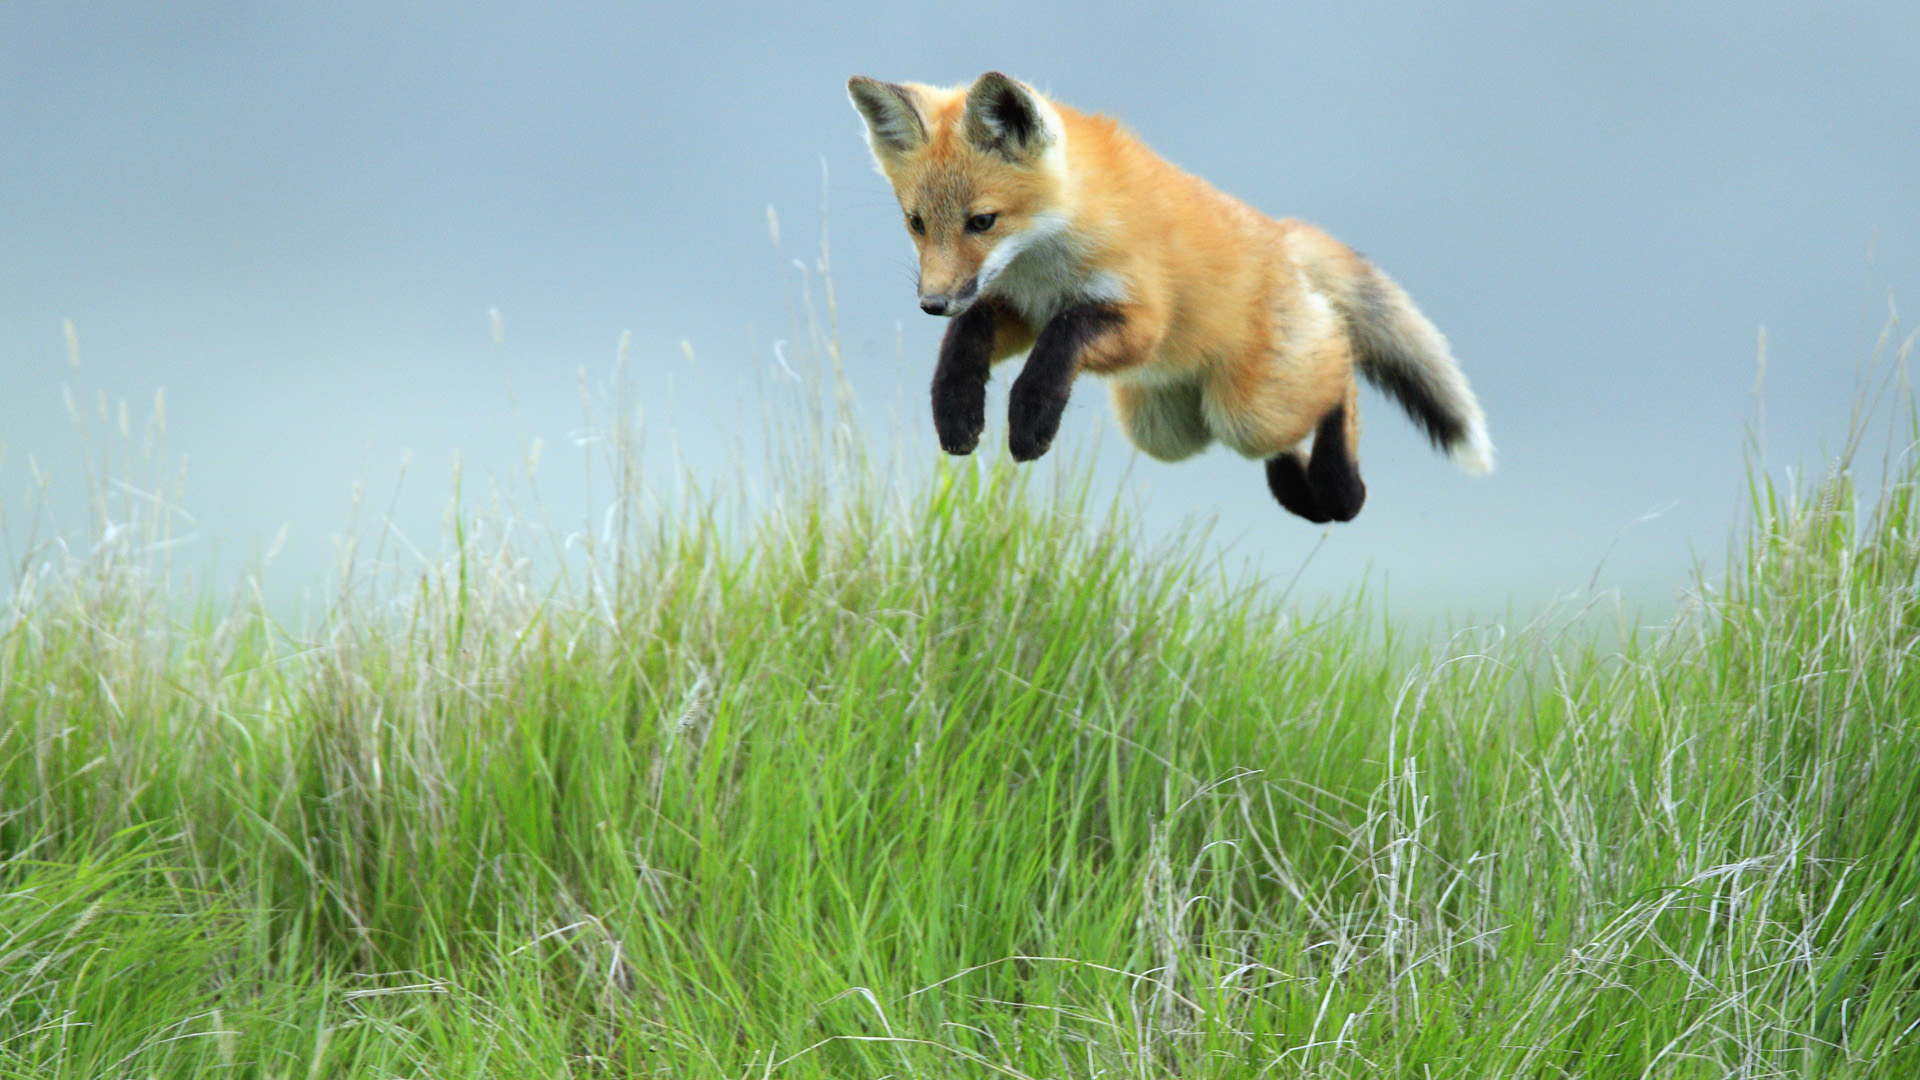 funny wallpaper red fox - photo #36